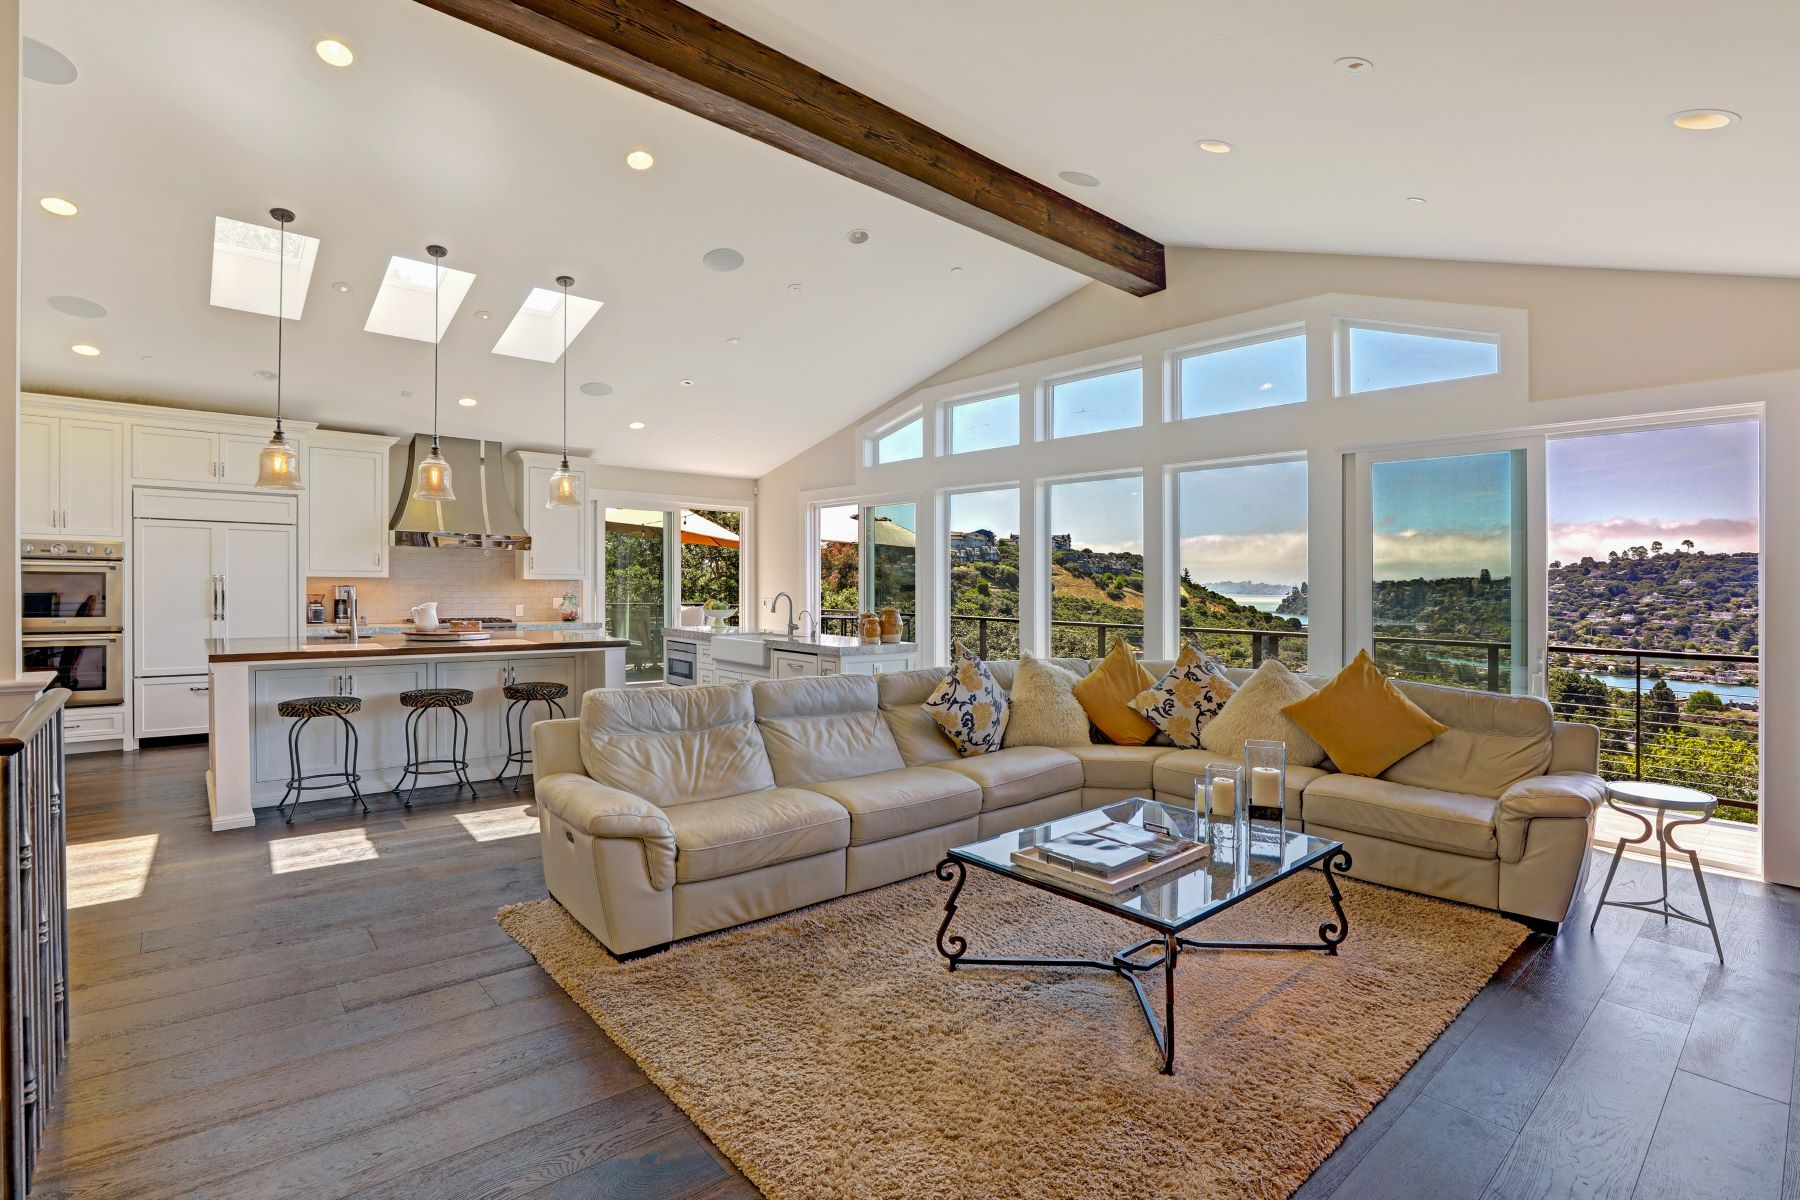 Property for Sale at Fabulous Tiburon View Home for Indoor-Outdoor Living 123 Round Hill Rd Tiburon, California 94920 United States